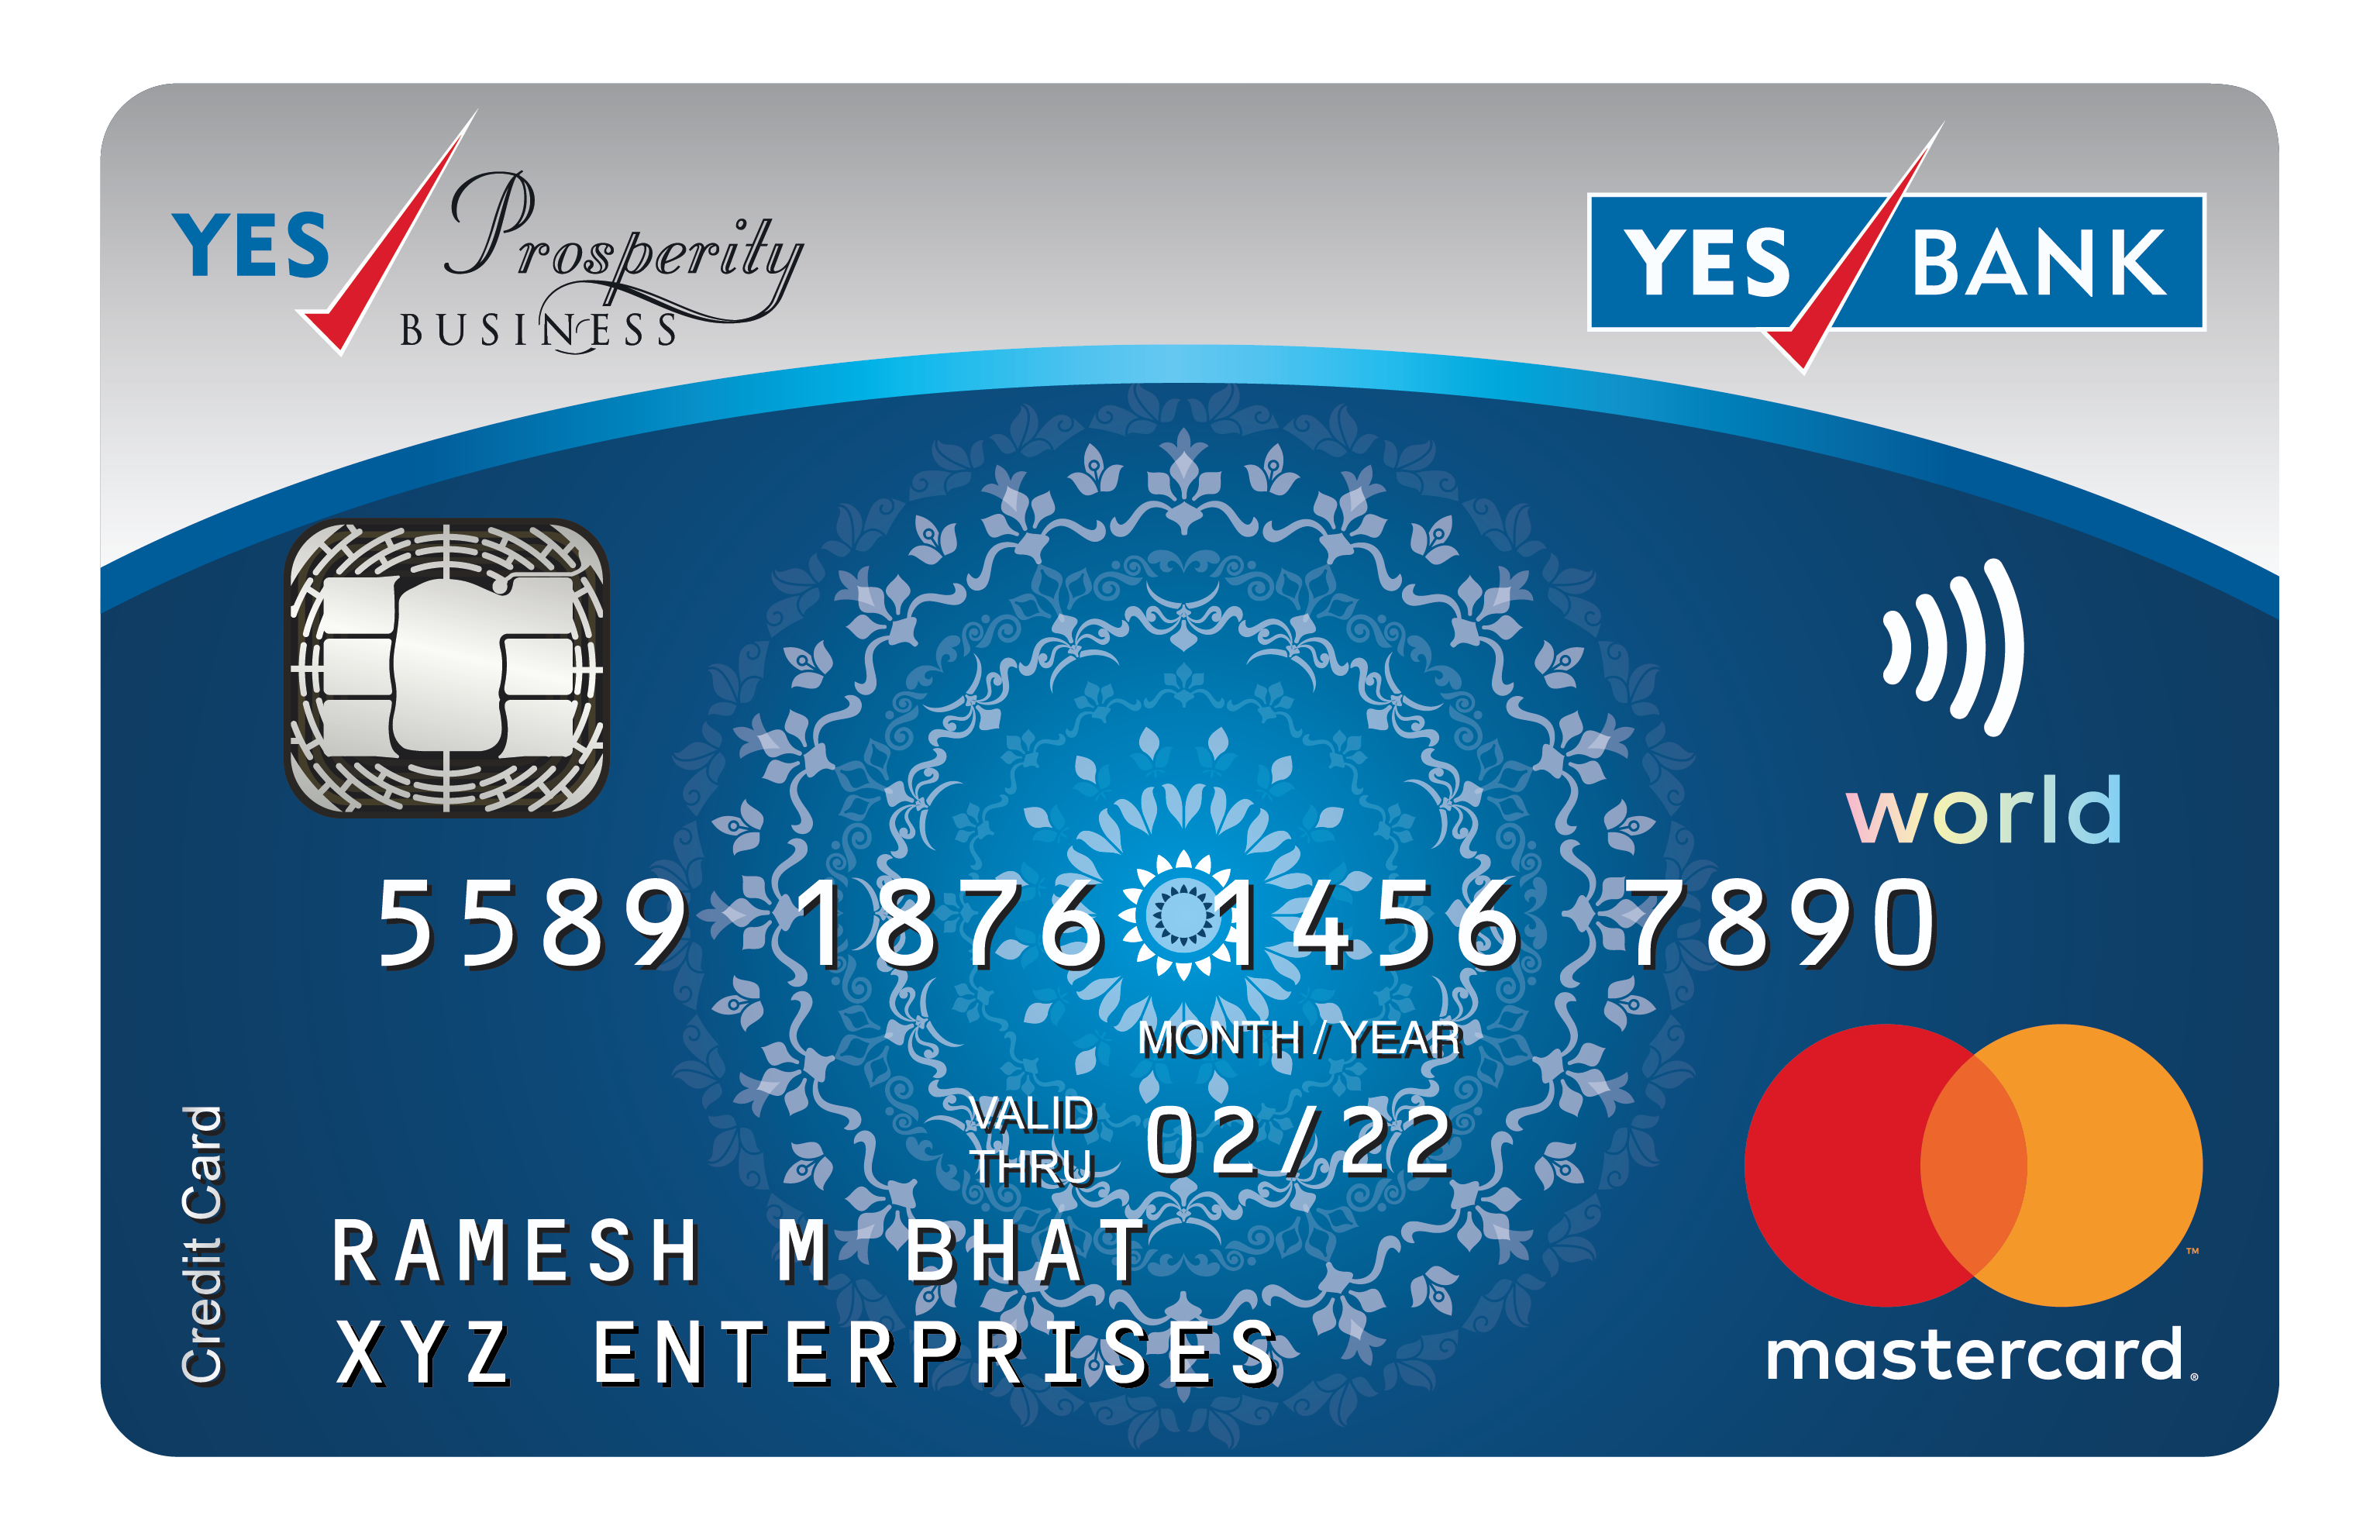 Yes Prosperity Business Card In 2021 Credit Card App Small Business Credit Cards Credit Card Website